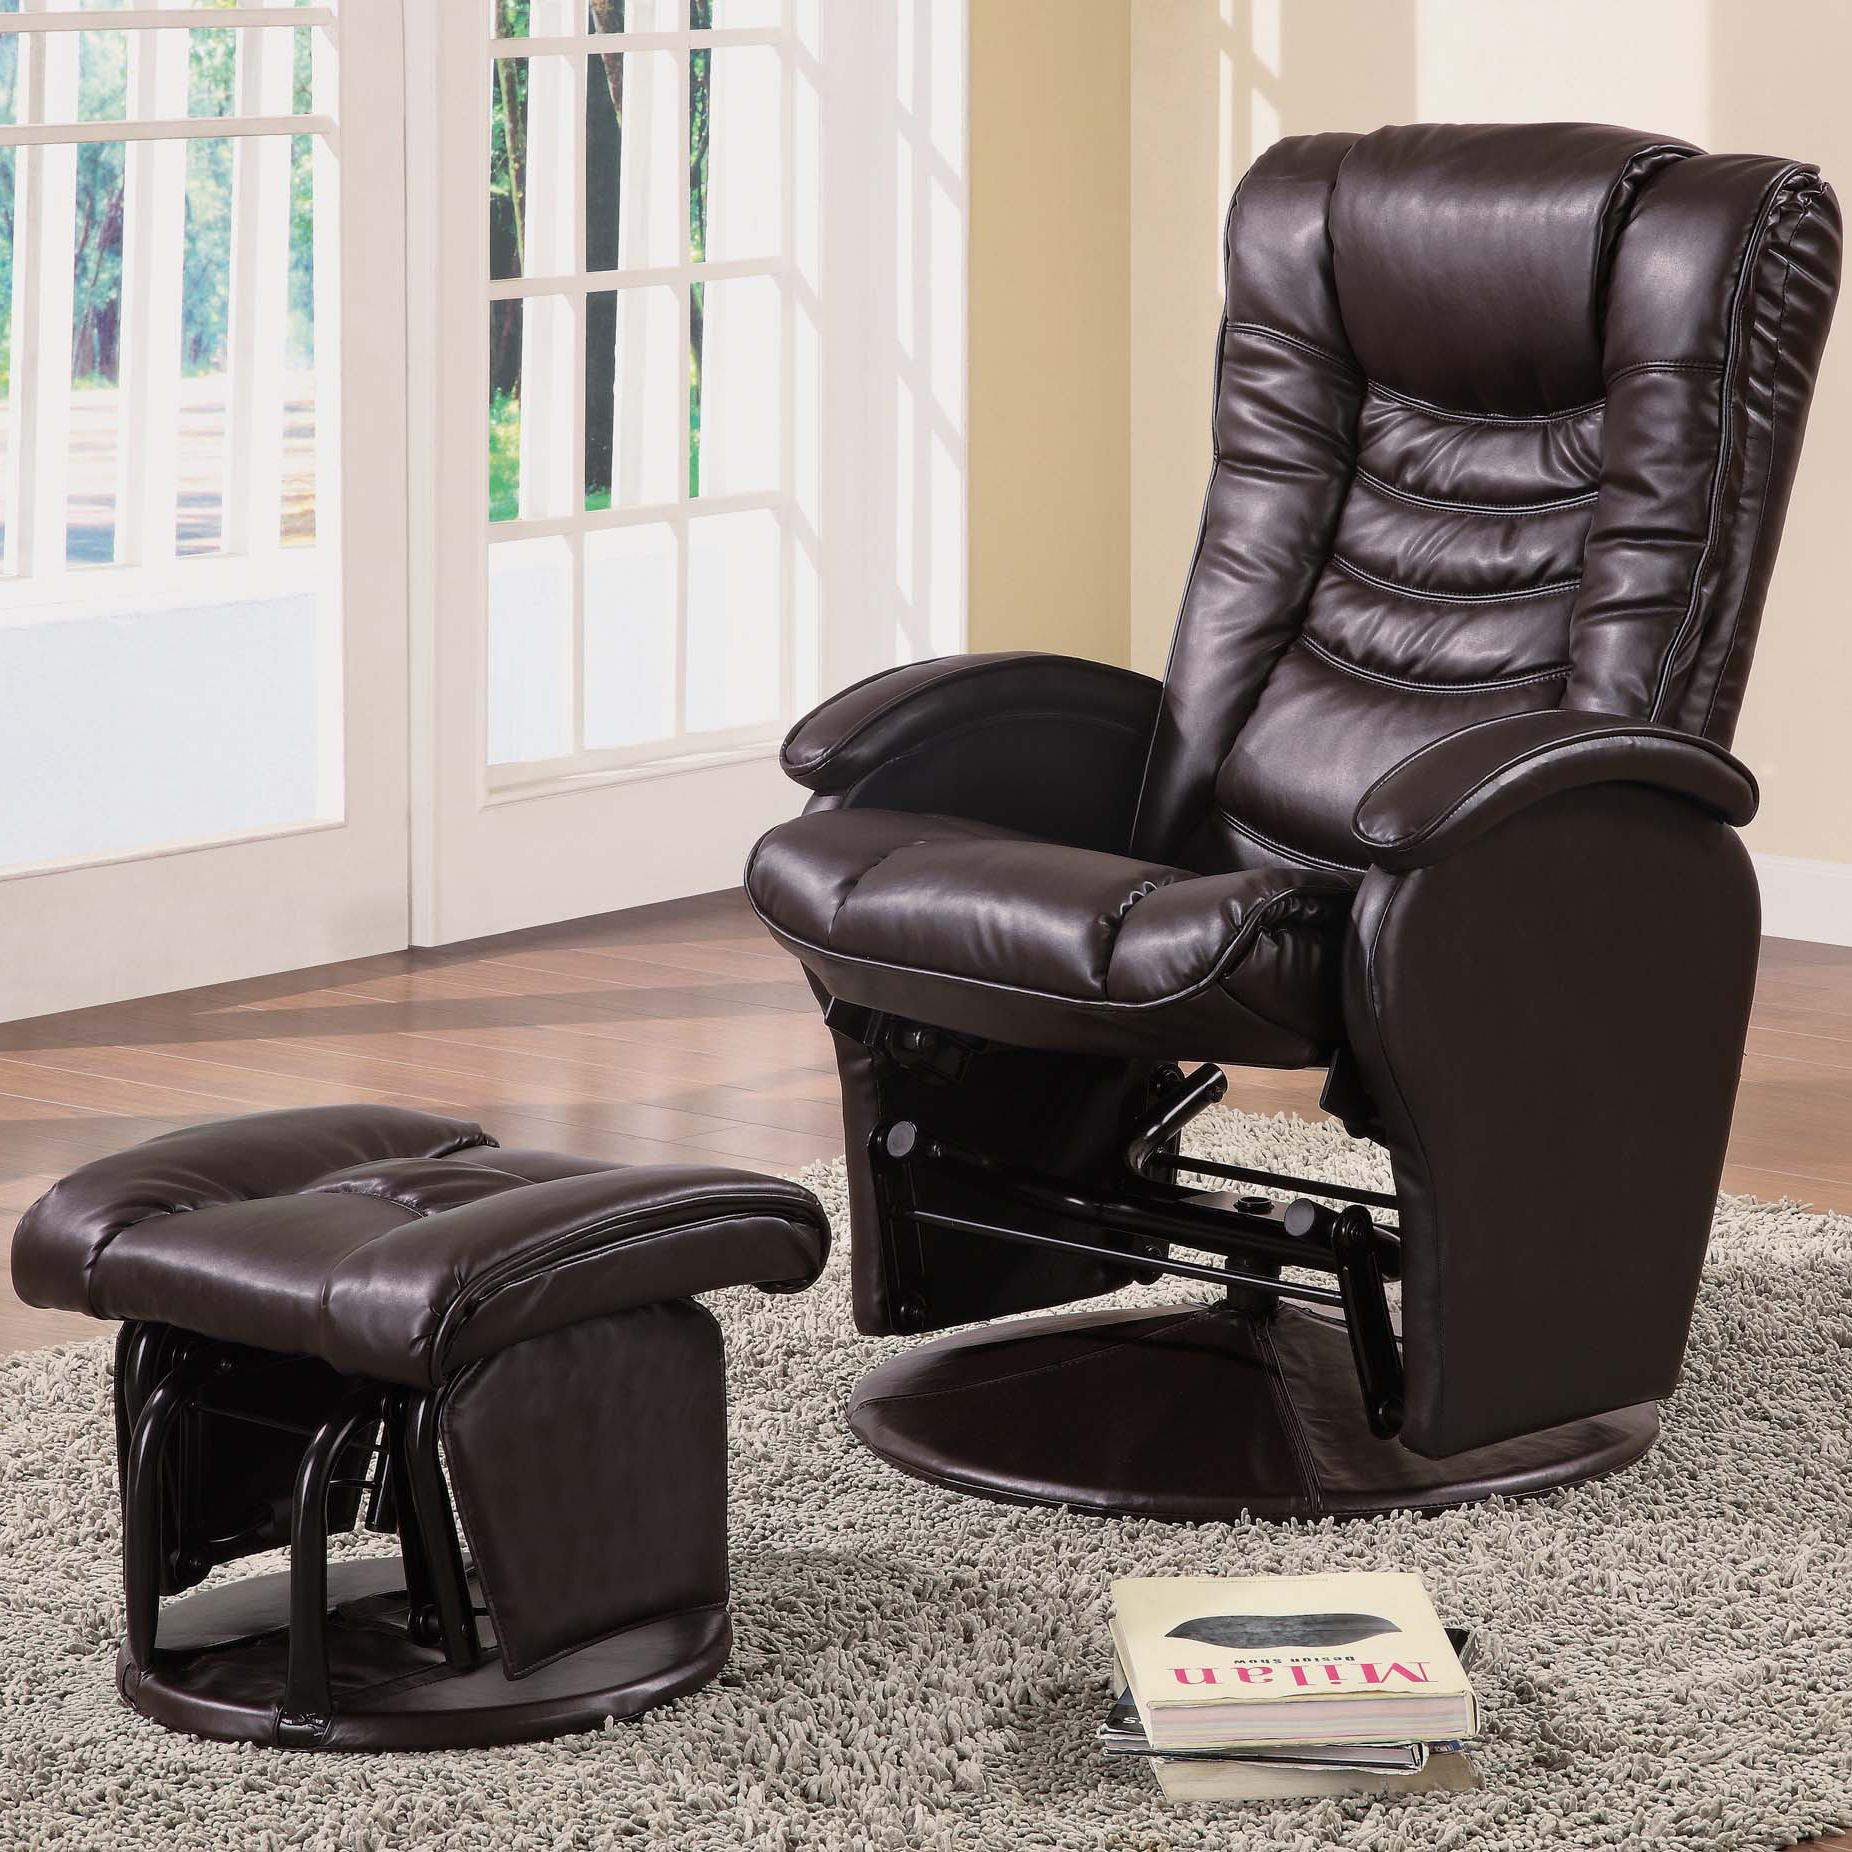 glider recliners coaster recliners with ottomans glider recliner with ottoman - item number:  600165 AHLKGFX